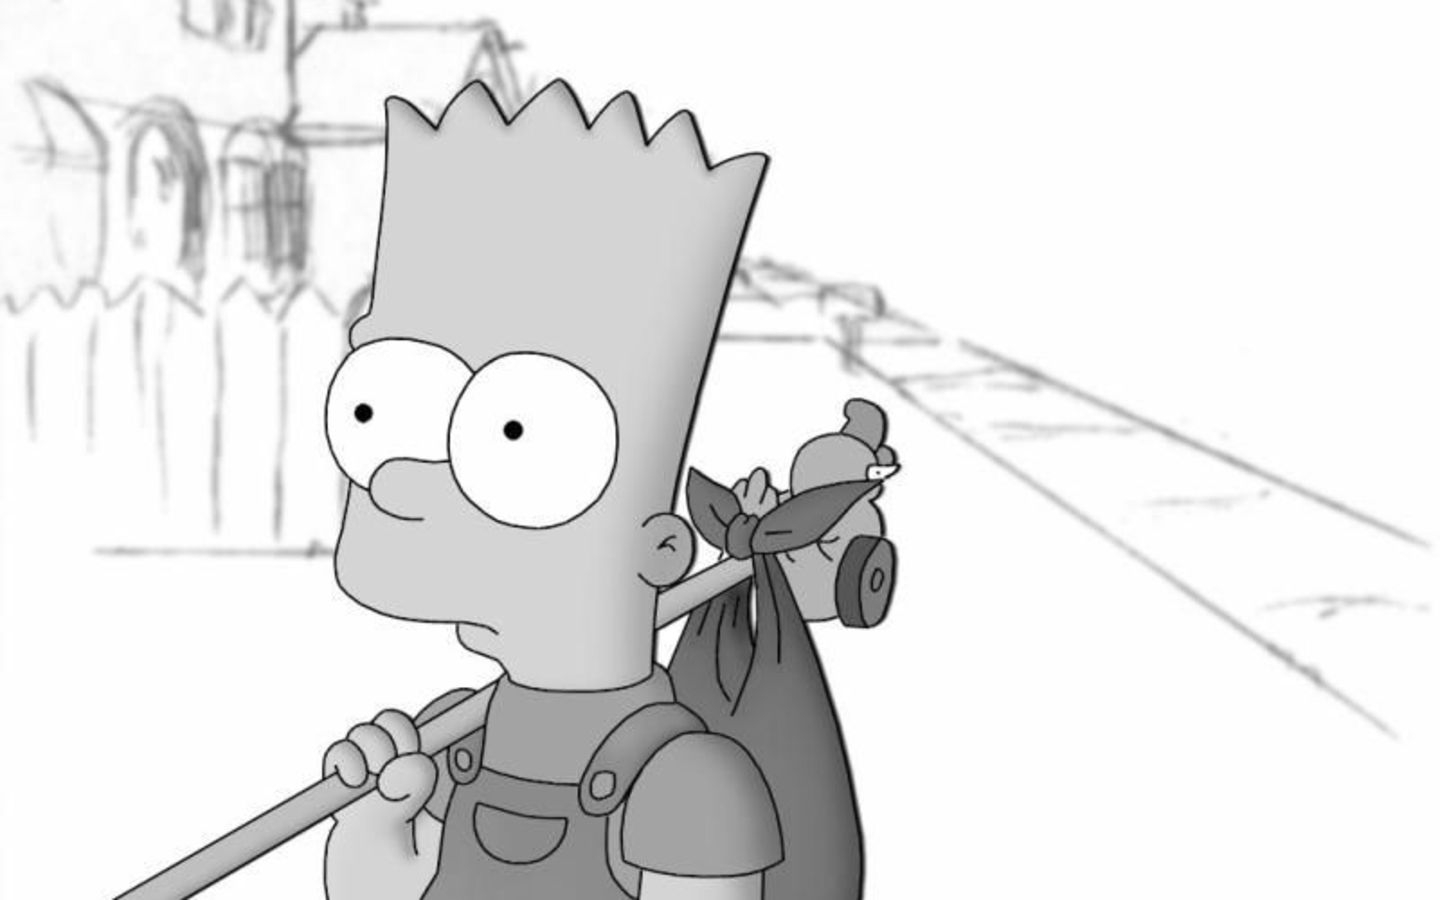 Bart leaves the house